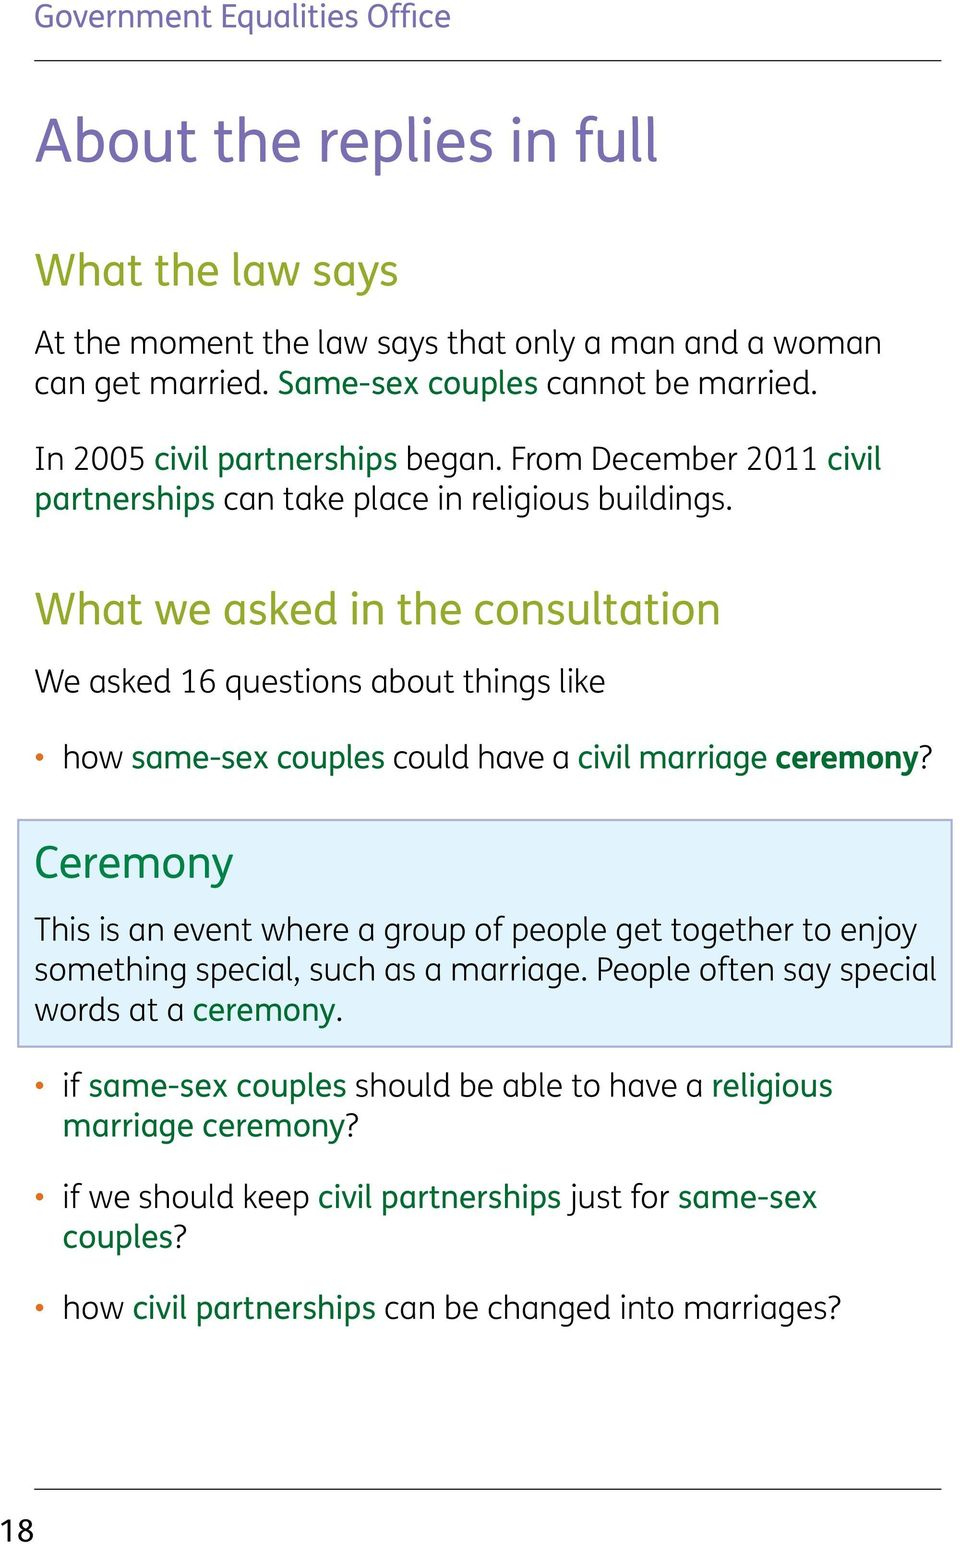 What we asked in the consultation We asked 16 questions about things like how same-sex couples could have a civil marriage ceremony?